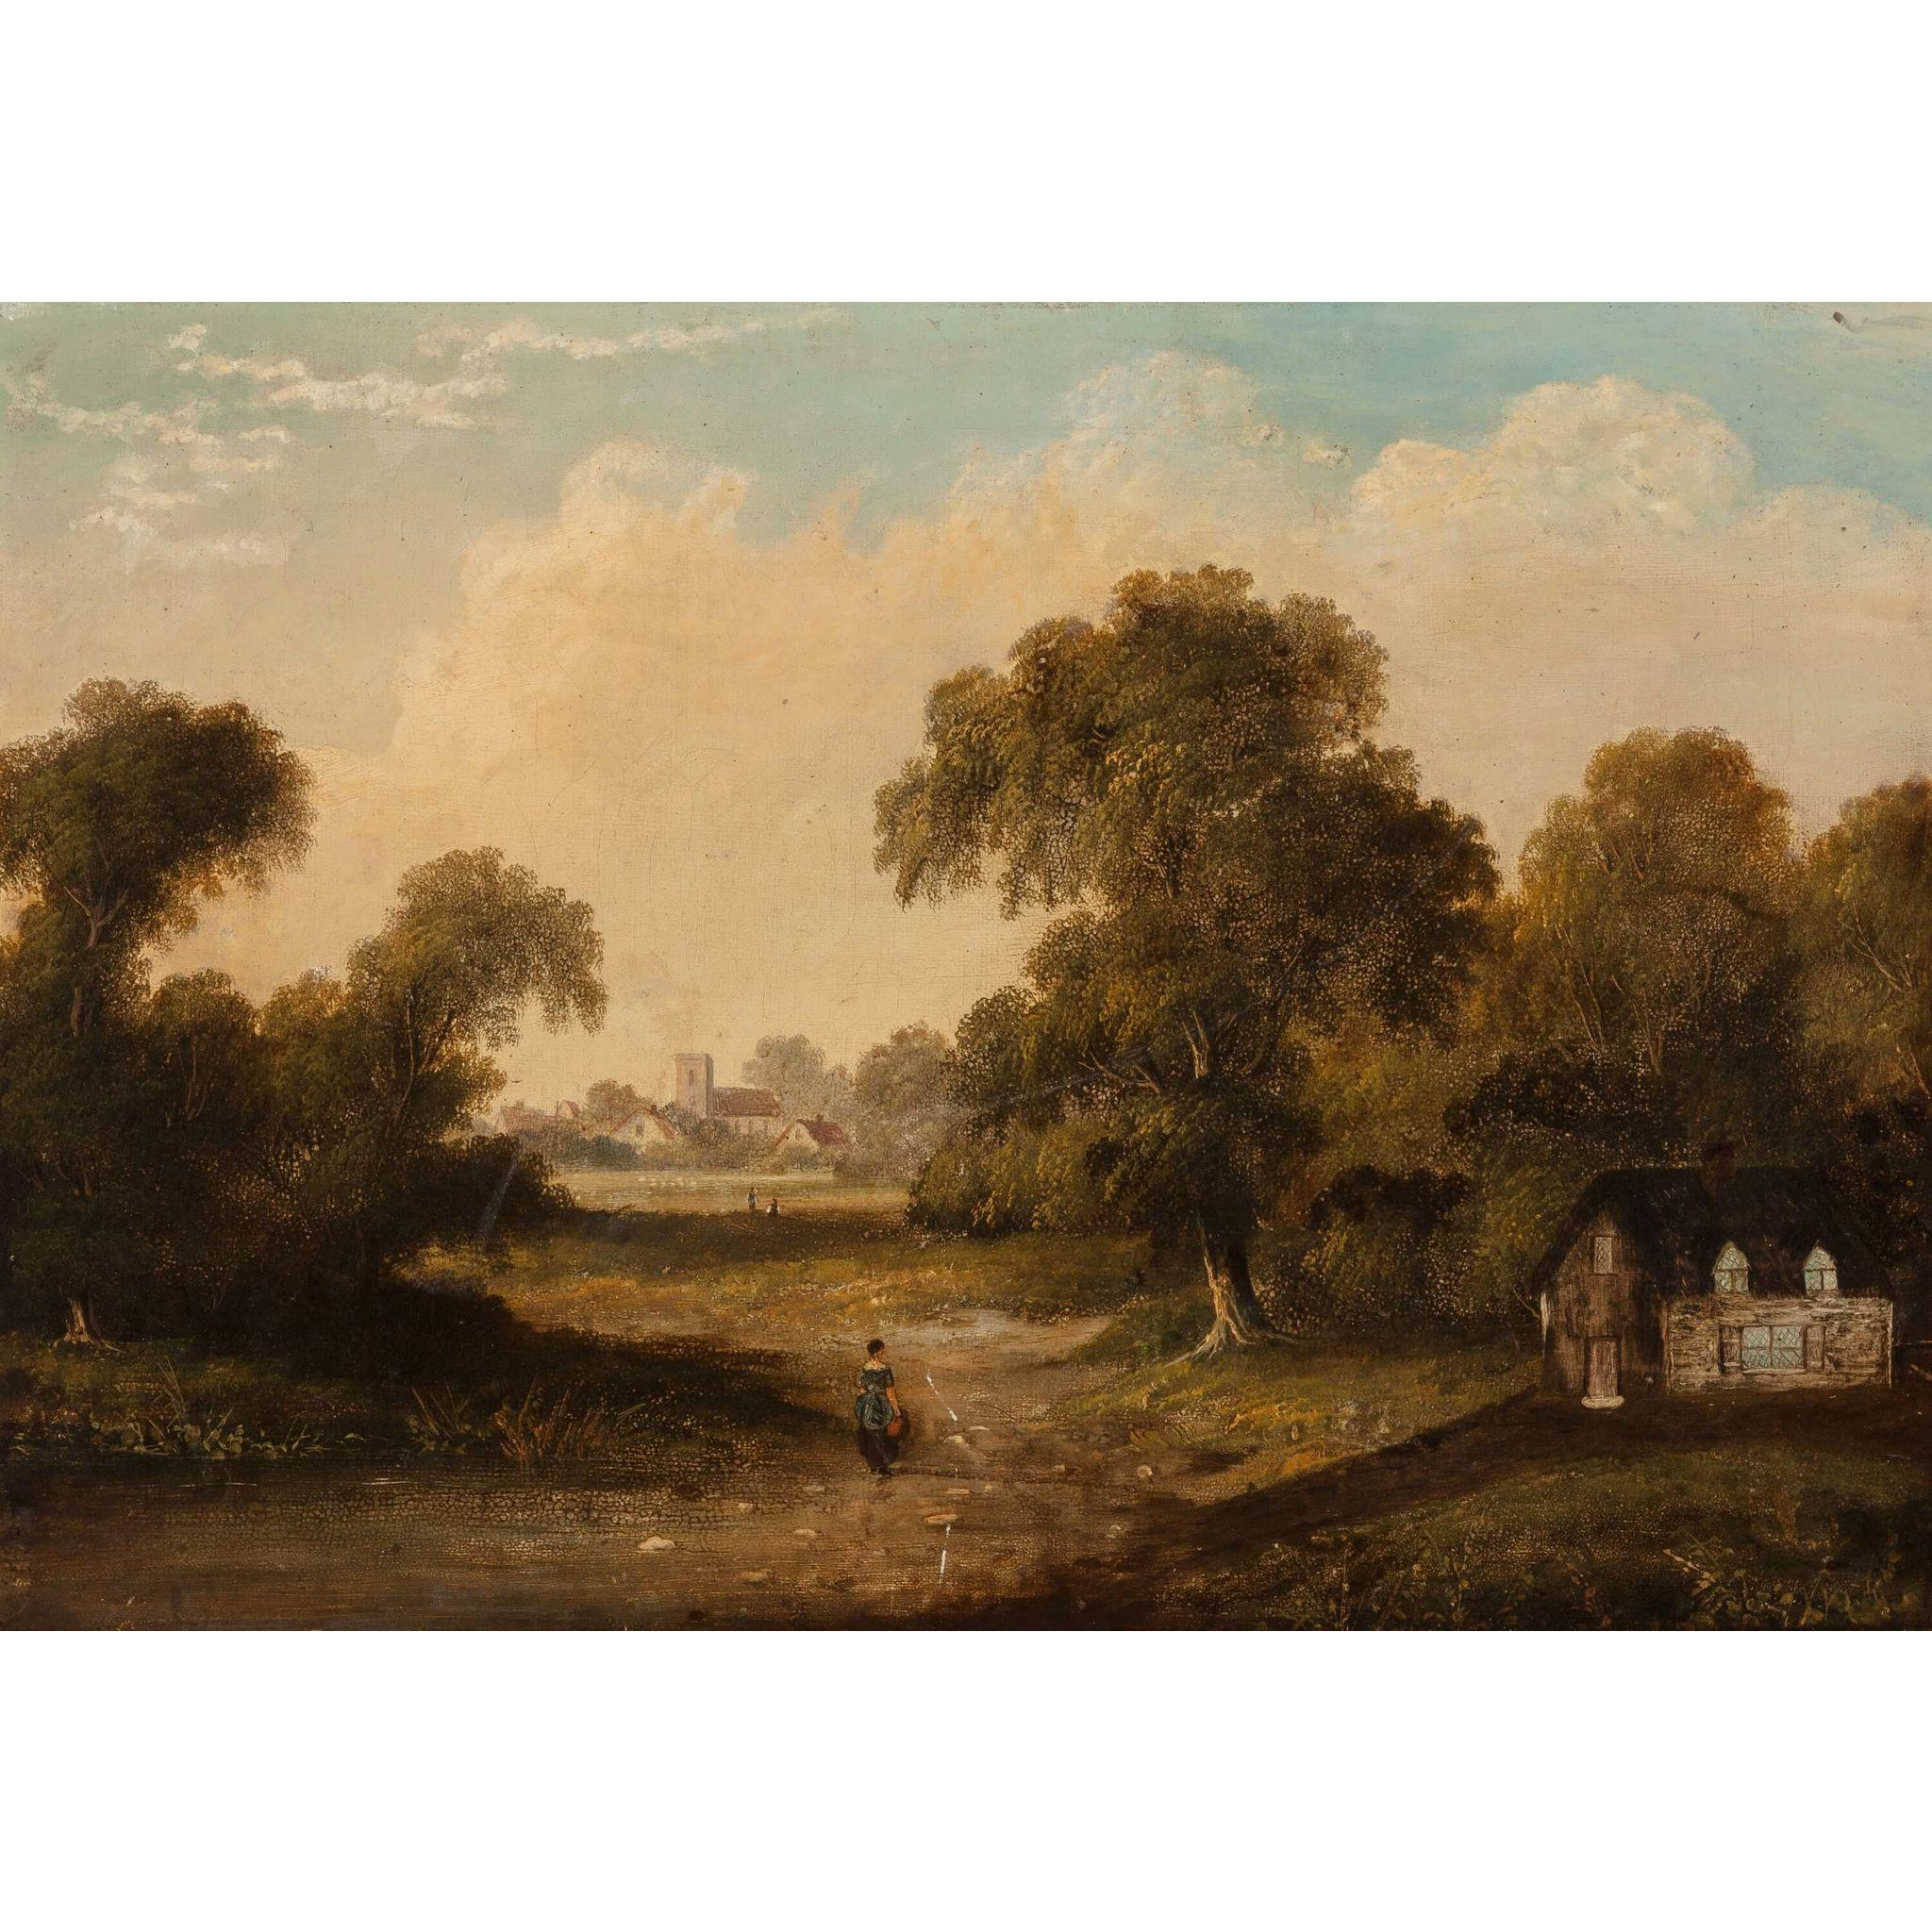 CONTINENTAL SCHOOL, 19th Century, Oil on Canvas, Extensive Landscape with a Figure on a Path and a Town in the Distance